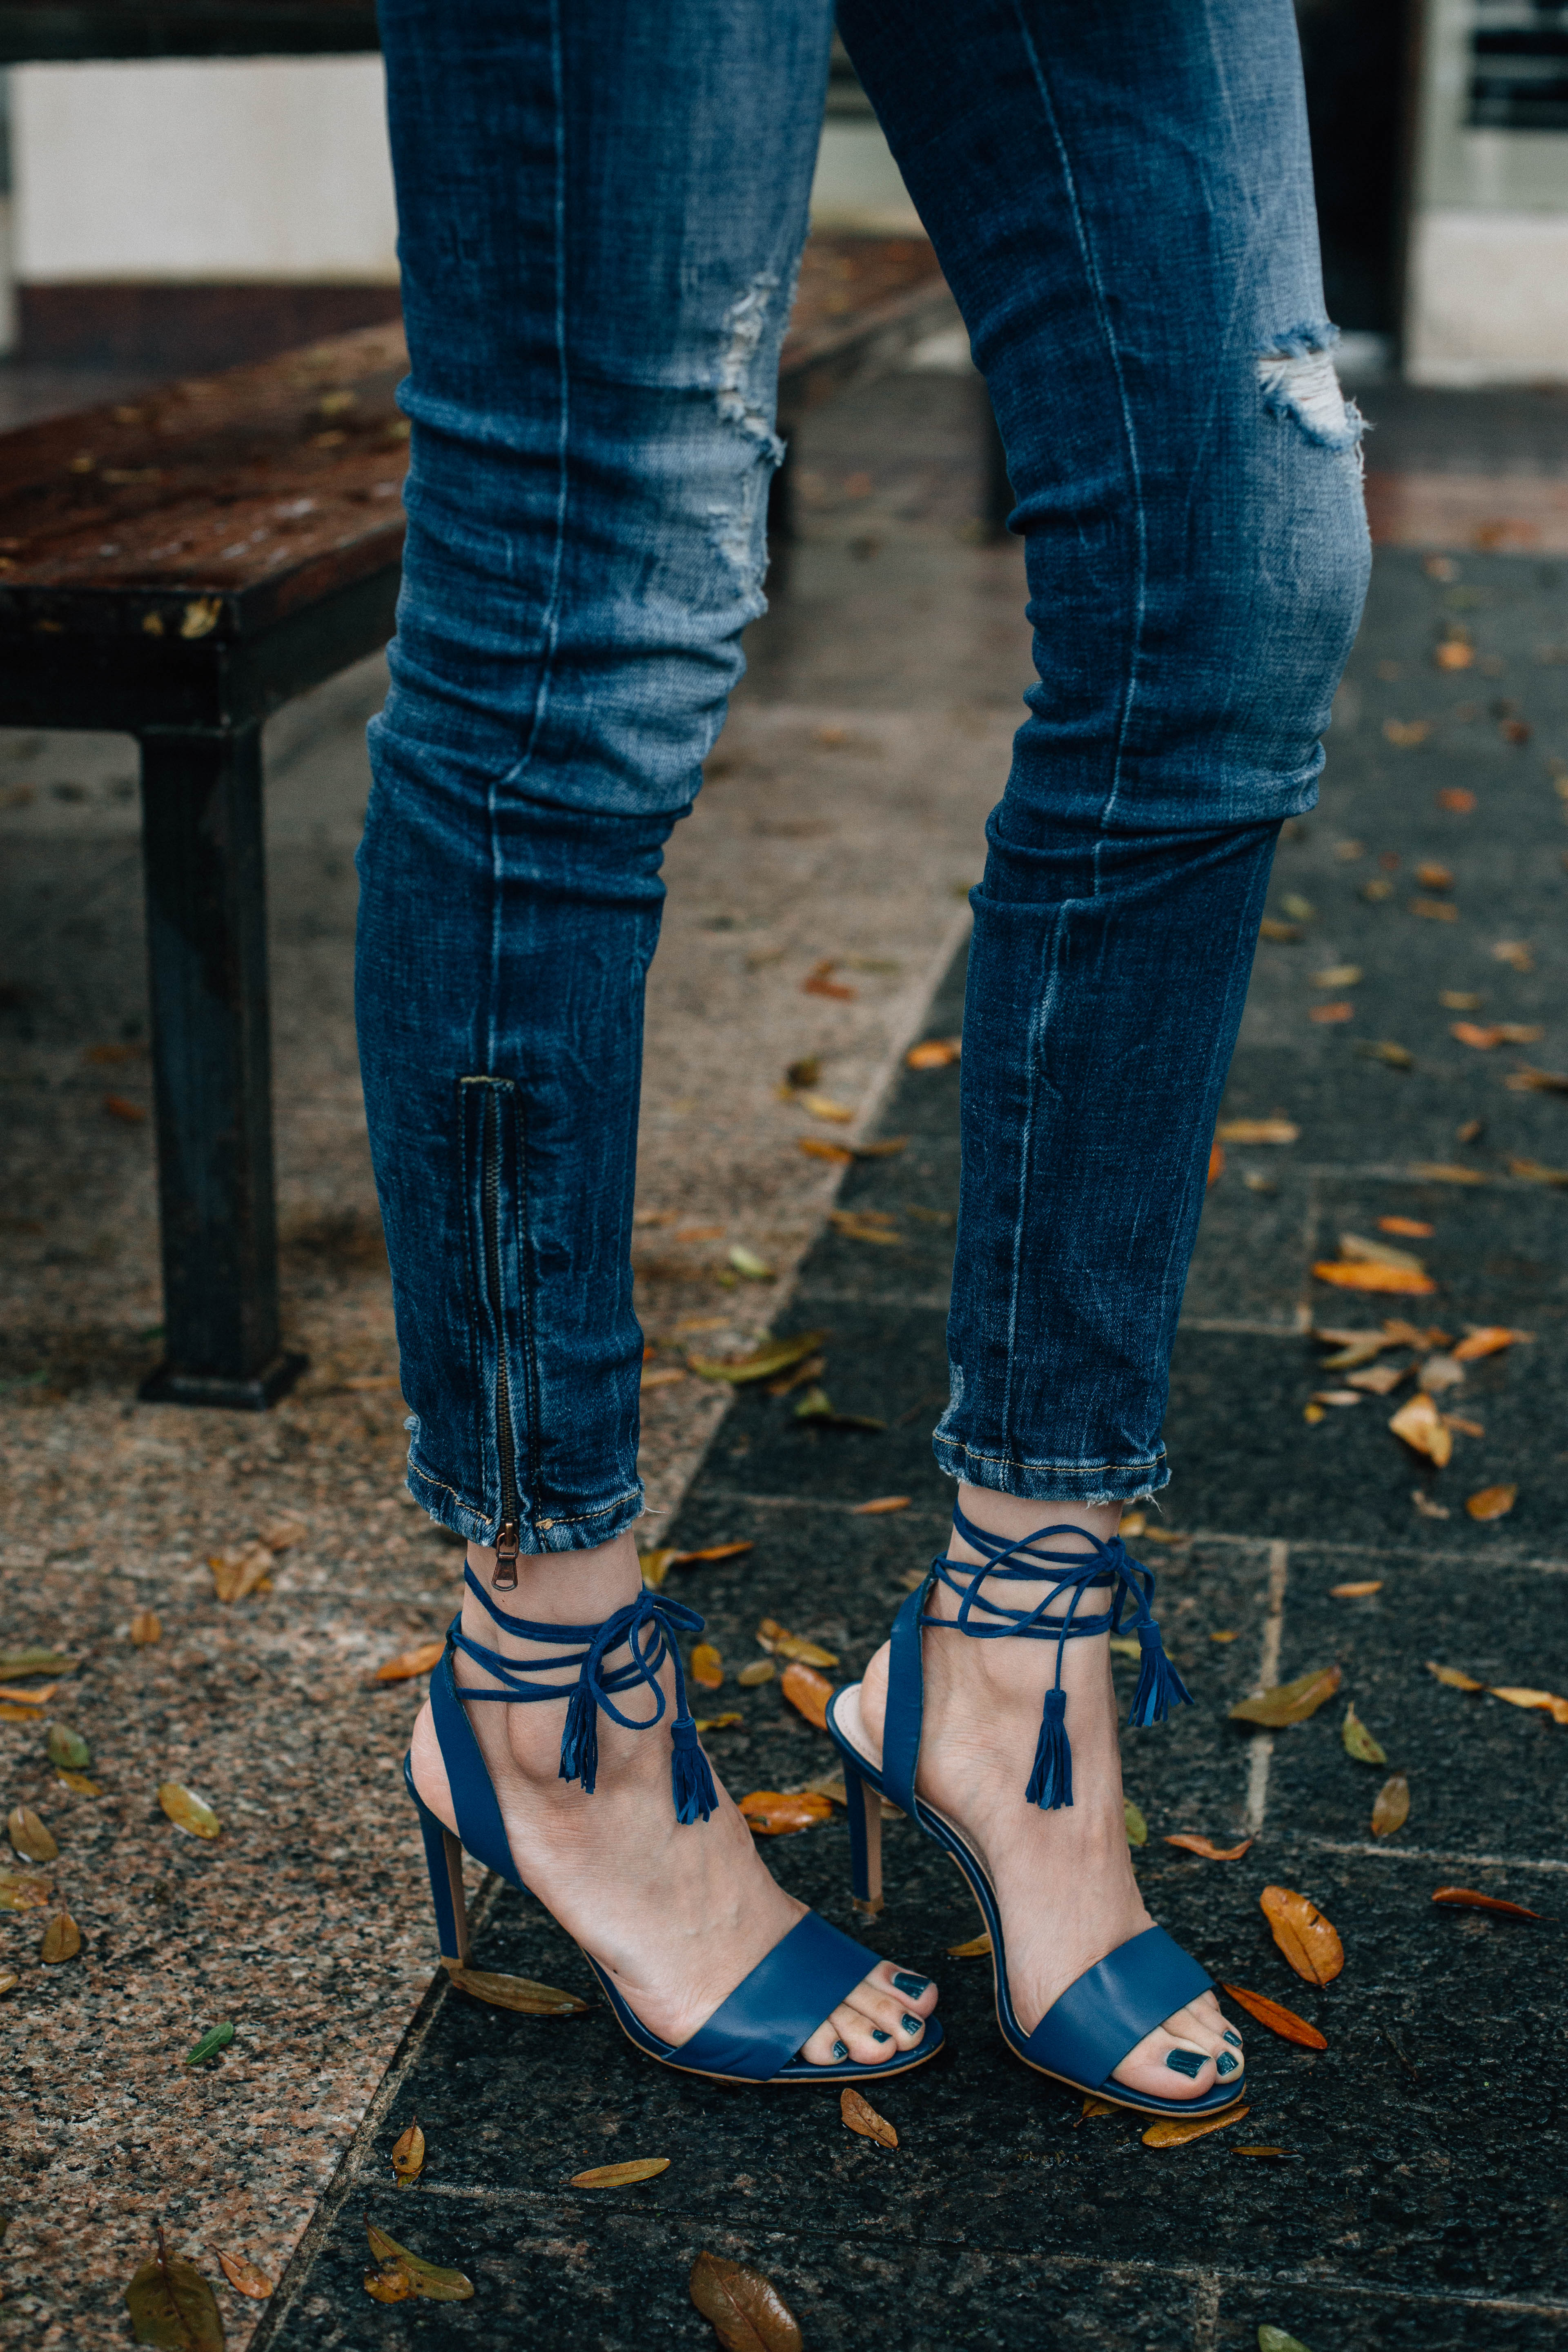 Daily Craving, Fashion Blogger, Ankle Zipper Jeans, Floral Print Tops, Skinny Jeans, Lace Up Sandals